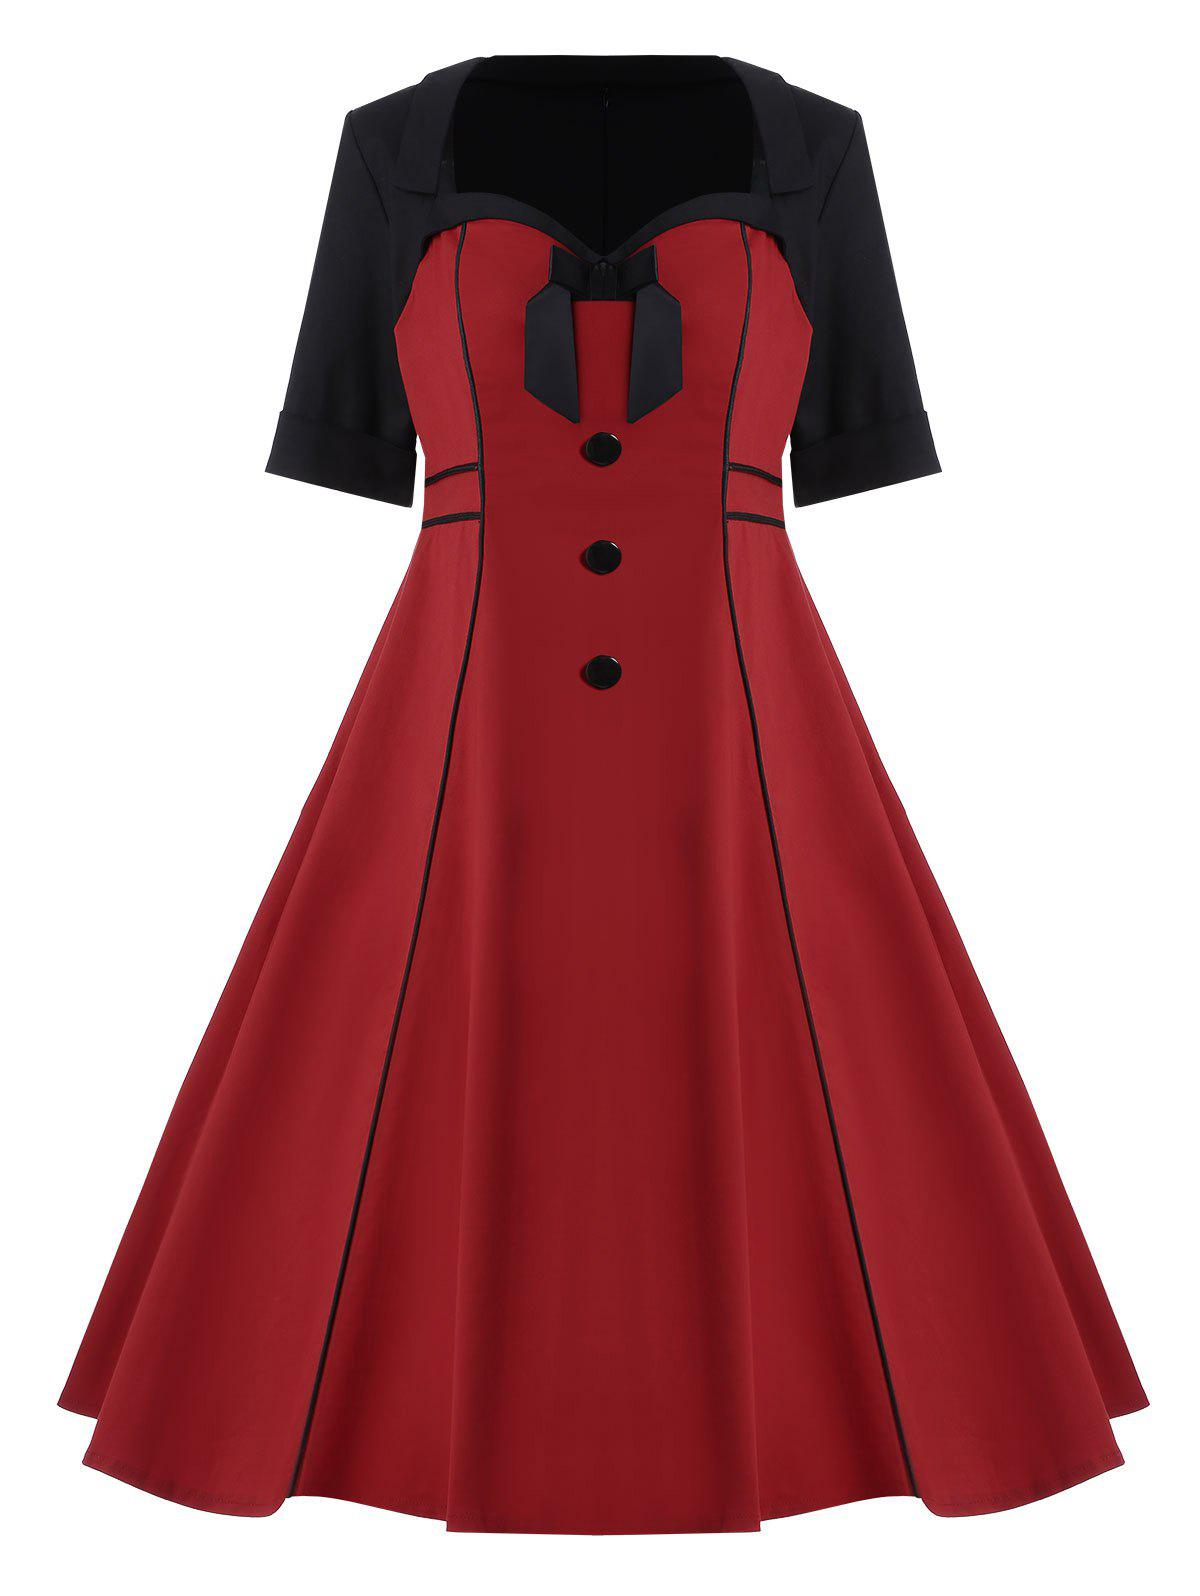 Bowknot Embellished Plus Size Midi Pin Up DressWOMEN<br><br>Size: 4XL; Color: WINE RED; Style: Vintage; Material: Cotton,Cotton Blend,Polyester; Silhouette: Ball Gown; Dresses Length: Mid-Calf; Neckline: Sweetheart Neck; Sleeve Length: Short Sleeves; Waist: High Waisted; Embellishment: Bowknot,Button,Vintage; Pattern Type: Others; With Belt: No; Season: Spring,Summer; Weight: 0.5000kg; Package Contents: 1 x Dress;